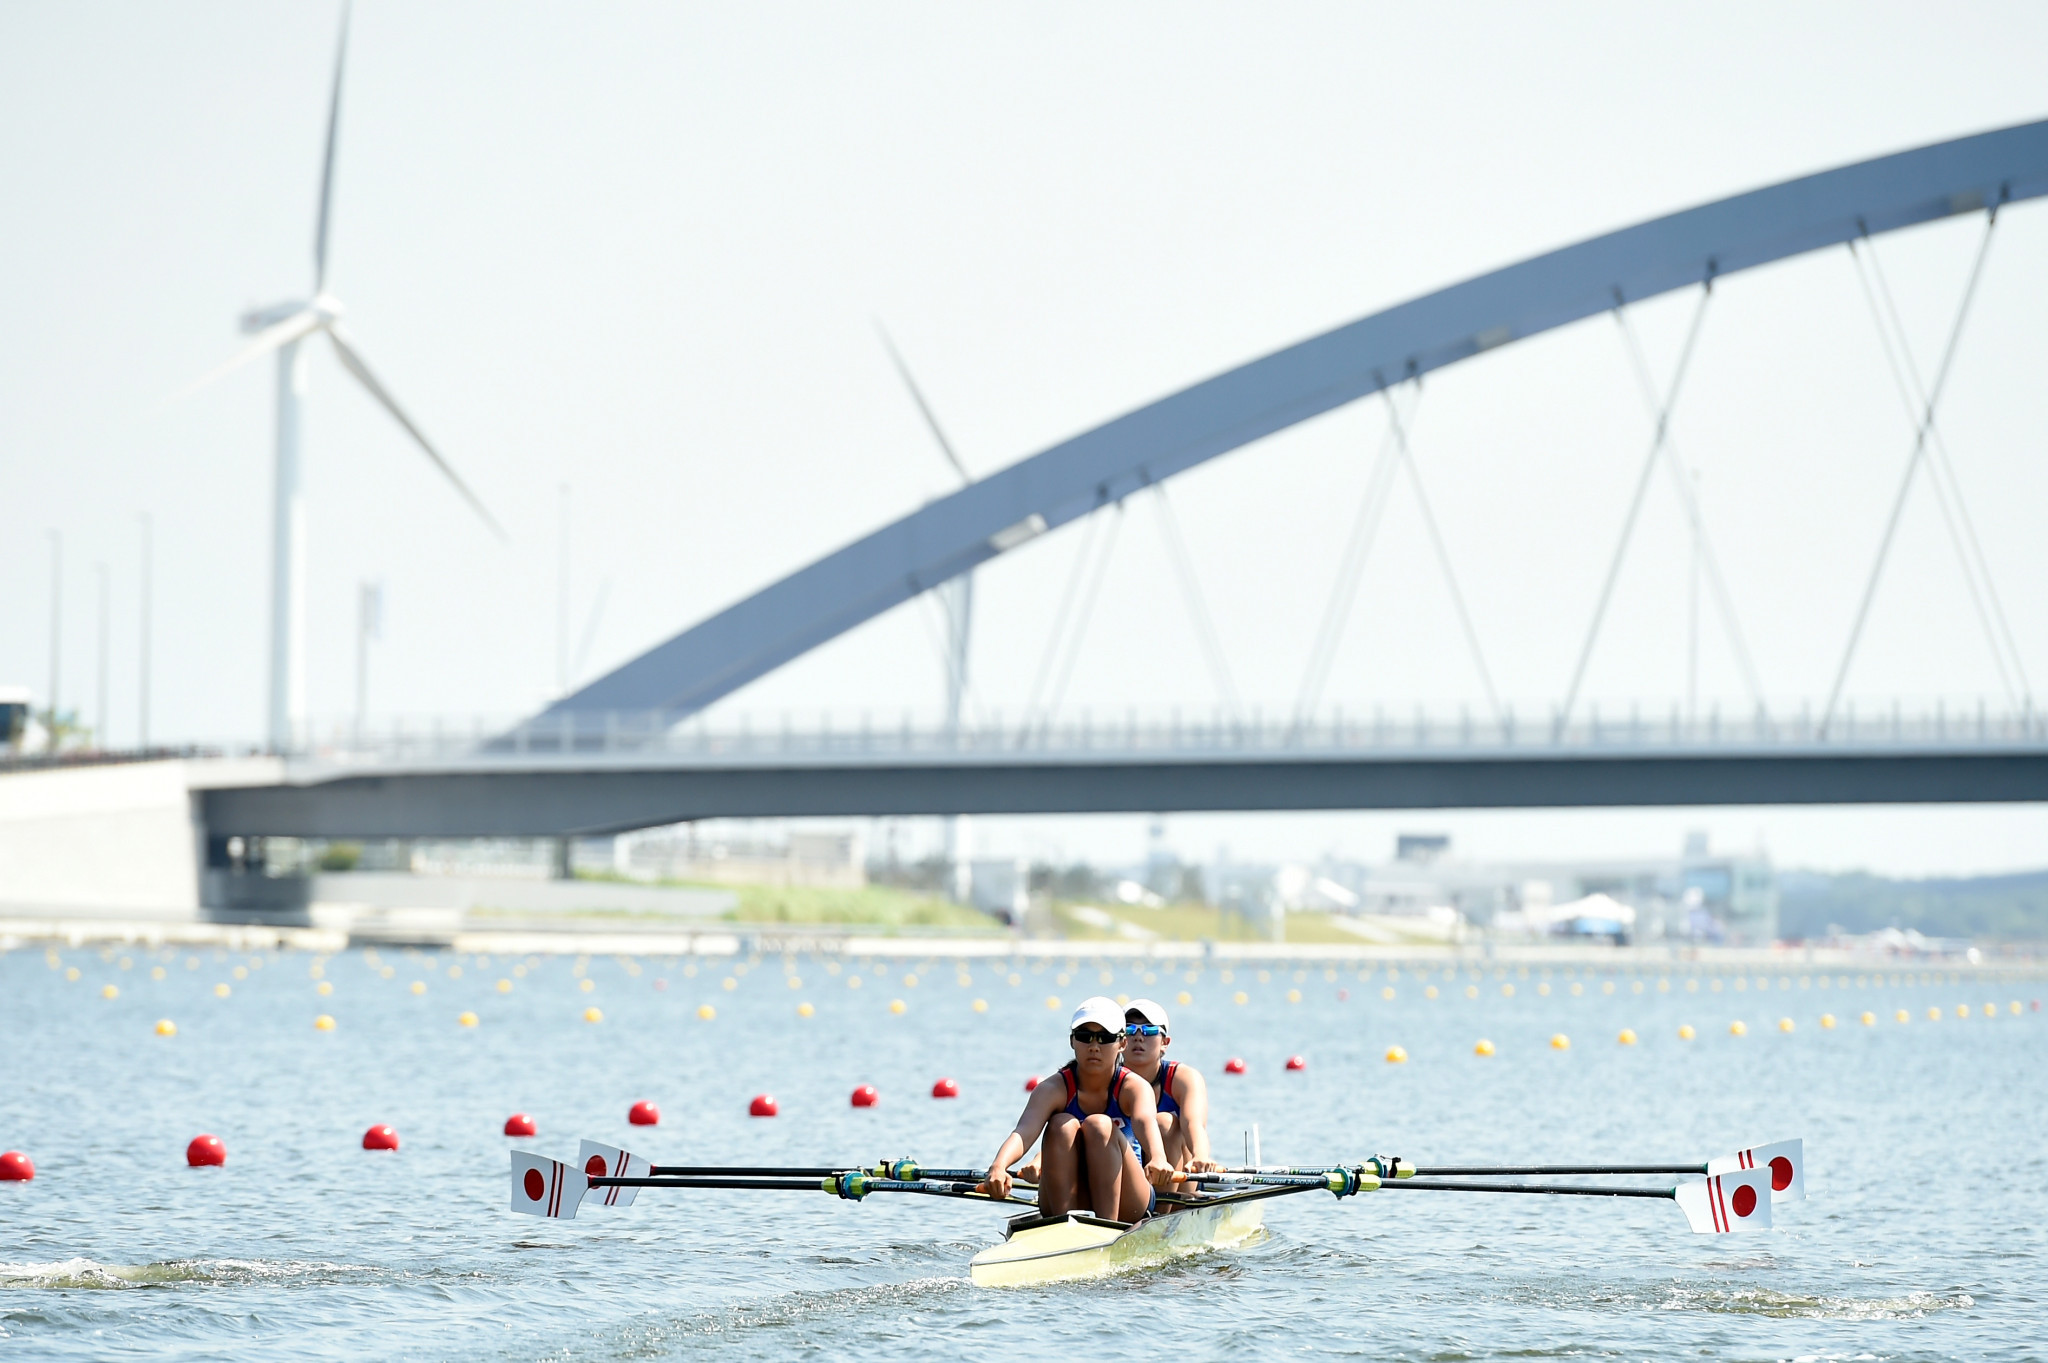 Tokyo is to host the Asia and Oceania Continental Olympic Qualification Regatta ©Getty Images